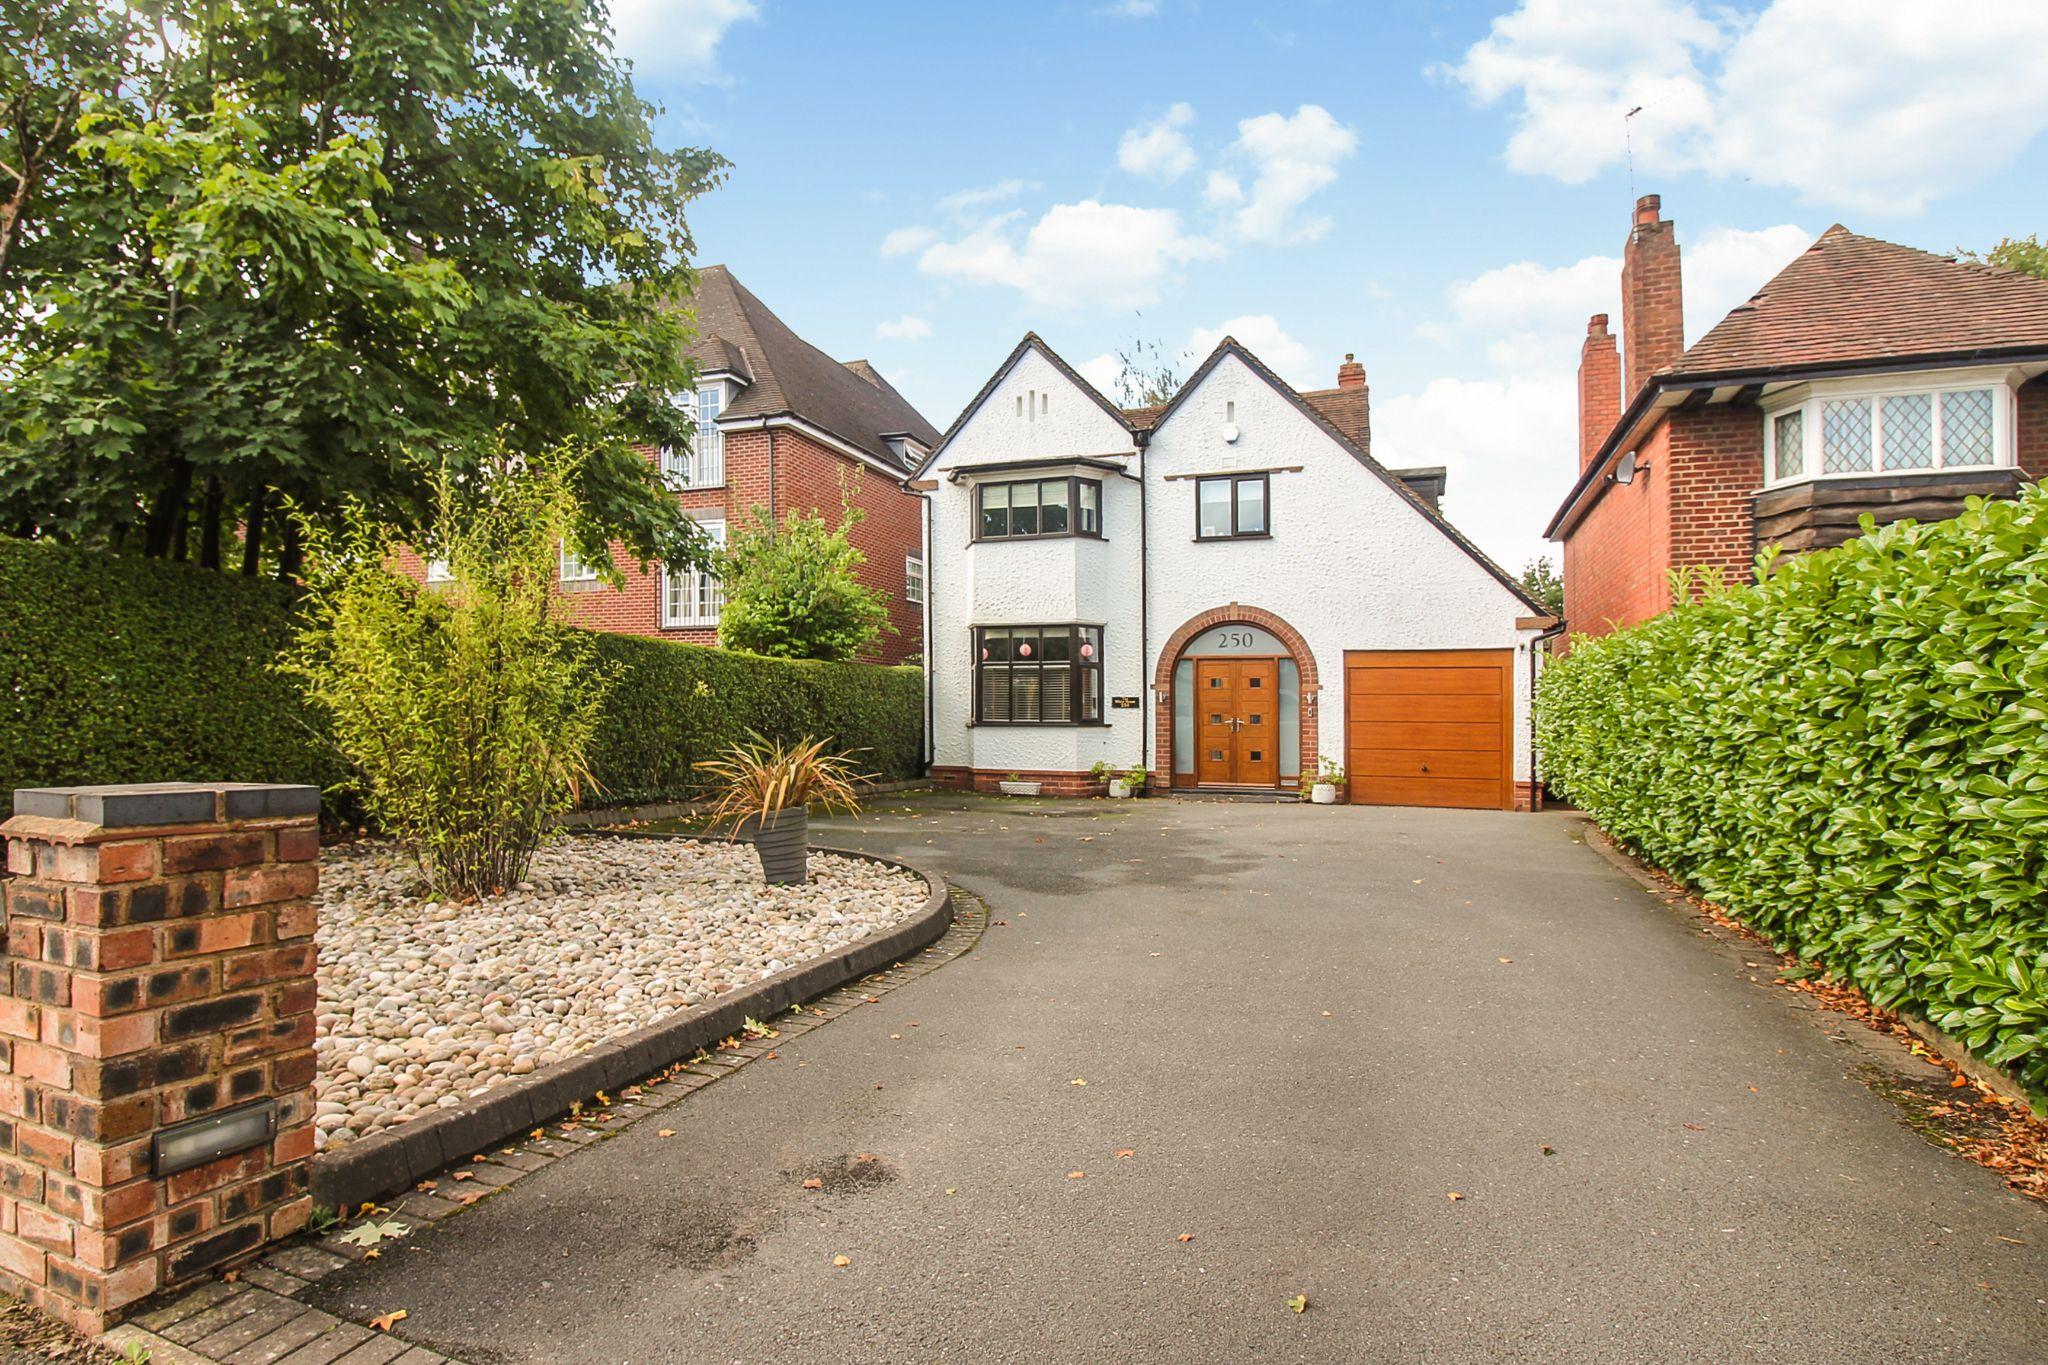 4 bedroom detached house For Sale in Solihull - Photograph 1.